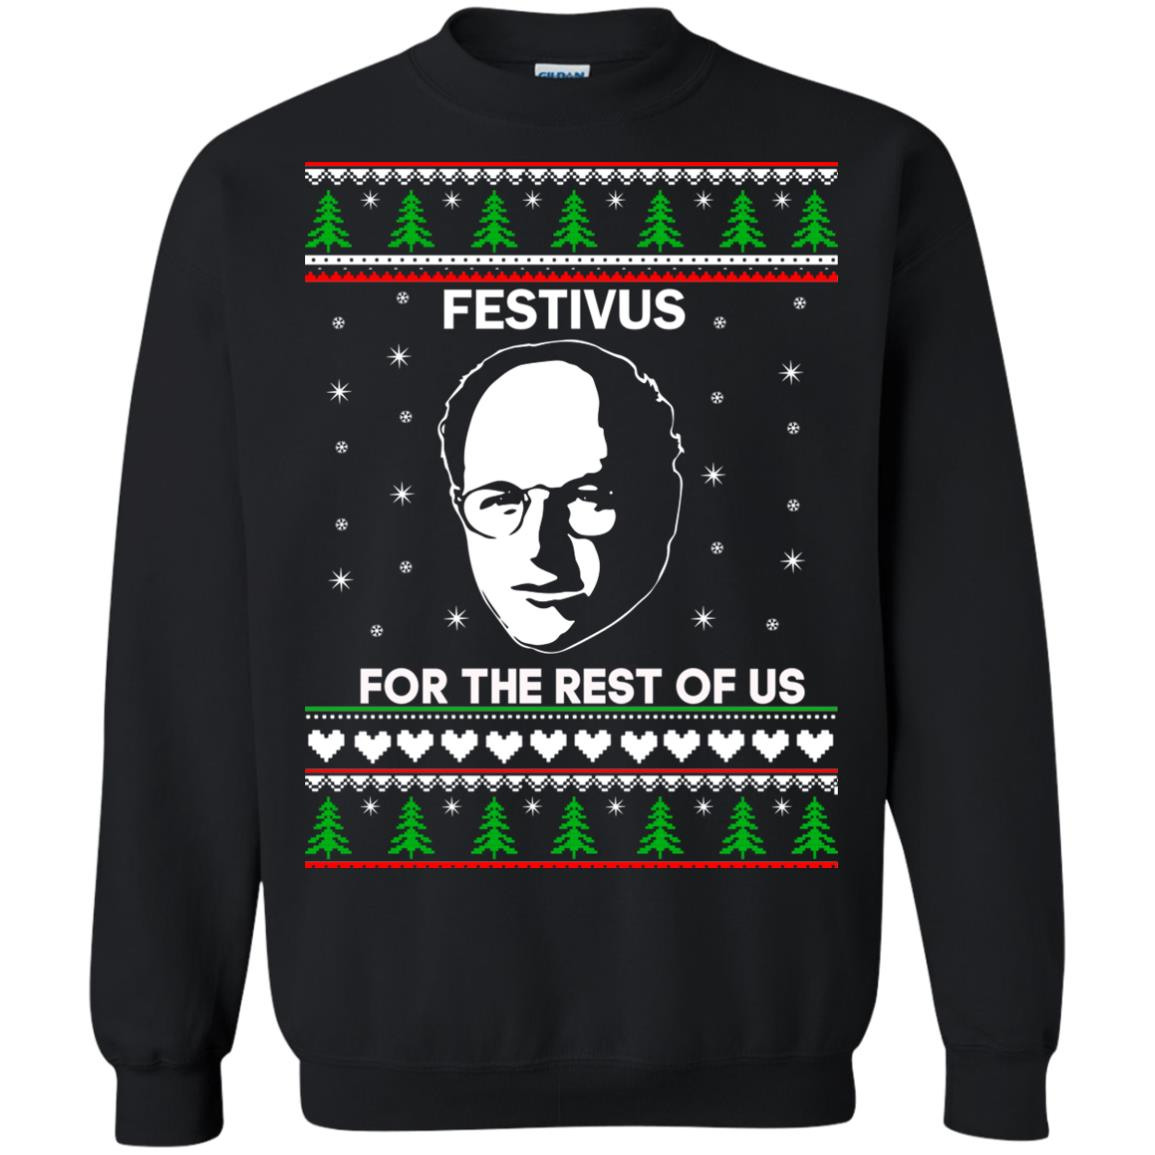 Frank Costanza Festivus For The Rest of US Christmas Sweater ...